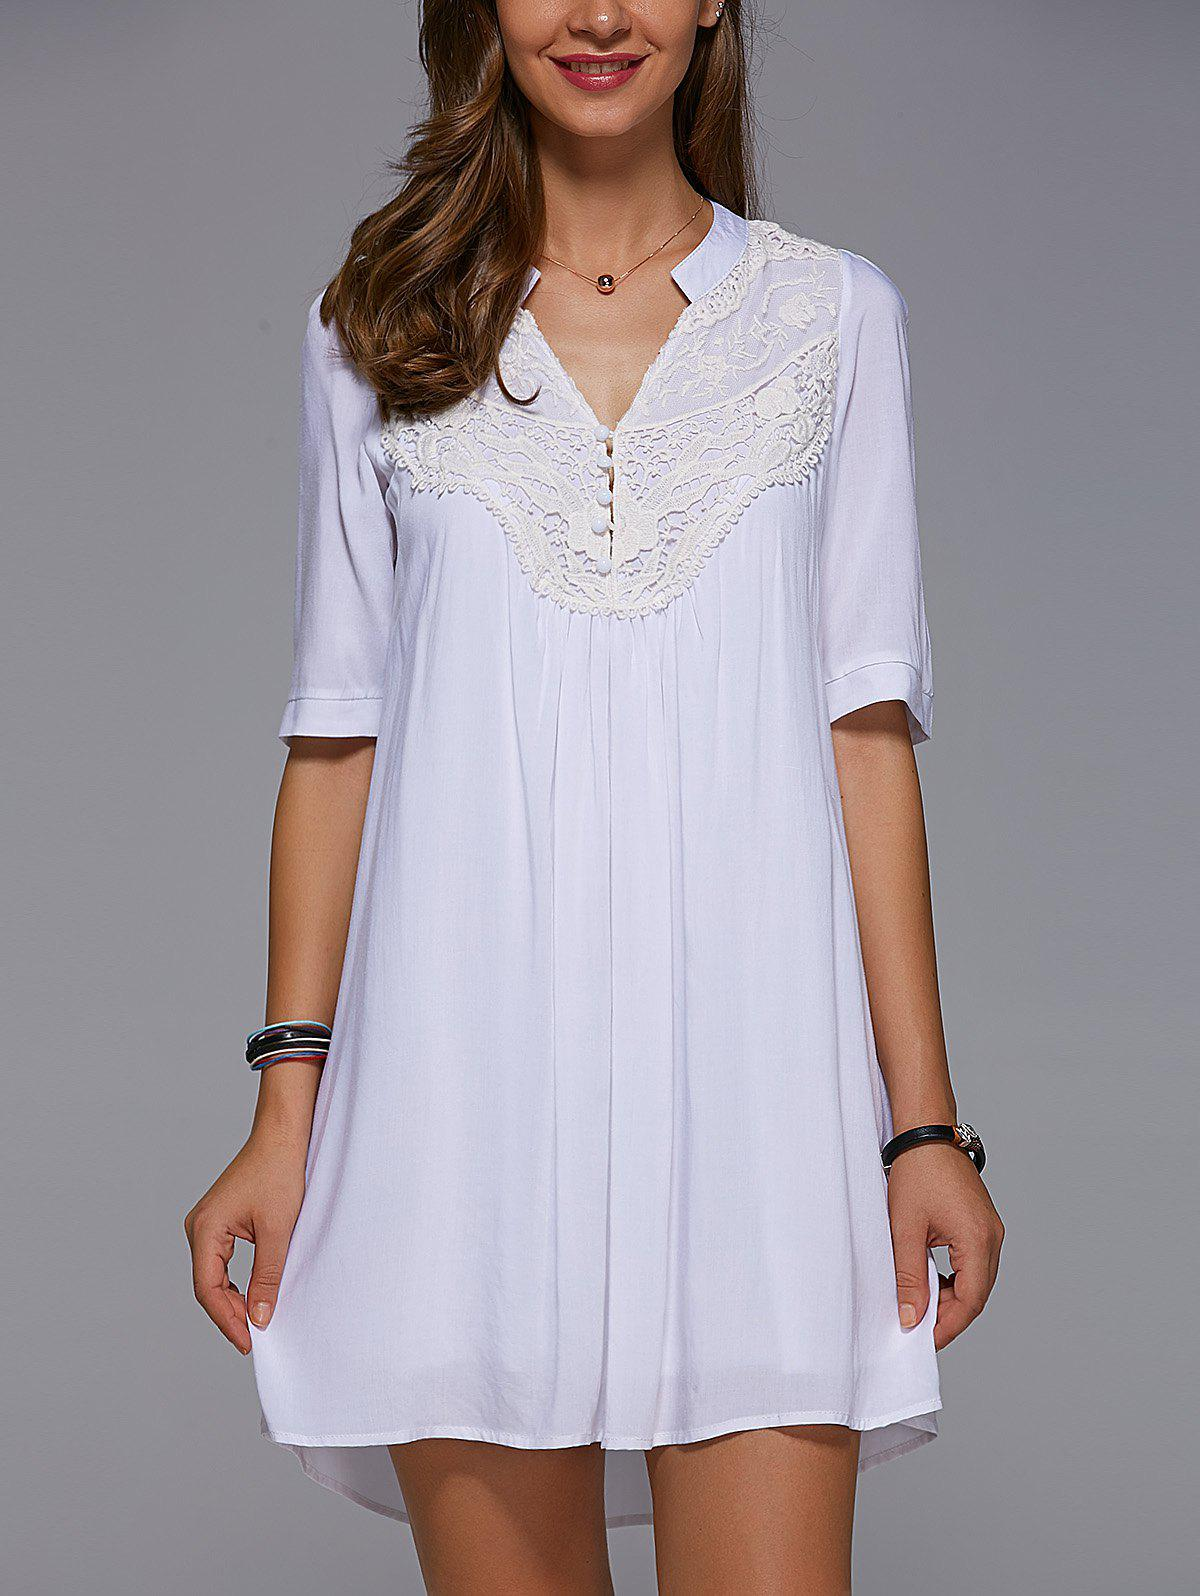 Lace Insert Mini Tunic Dress - WHITE XL